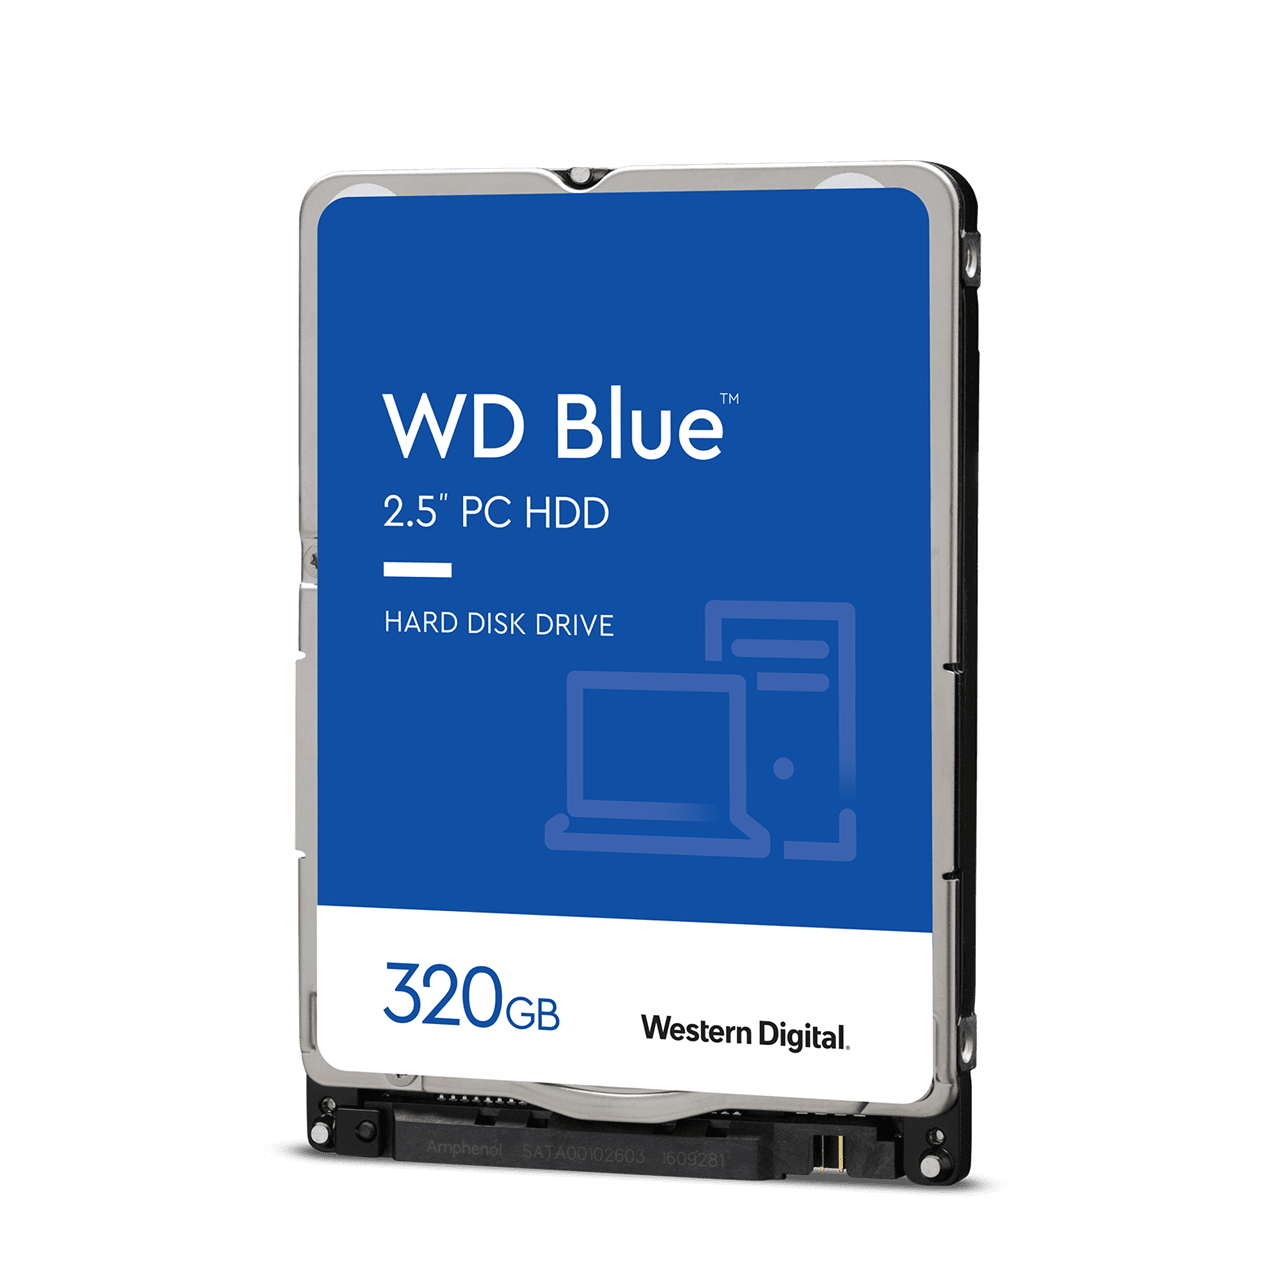 WD Blue™ 320GB PC Hard Drive - Image1